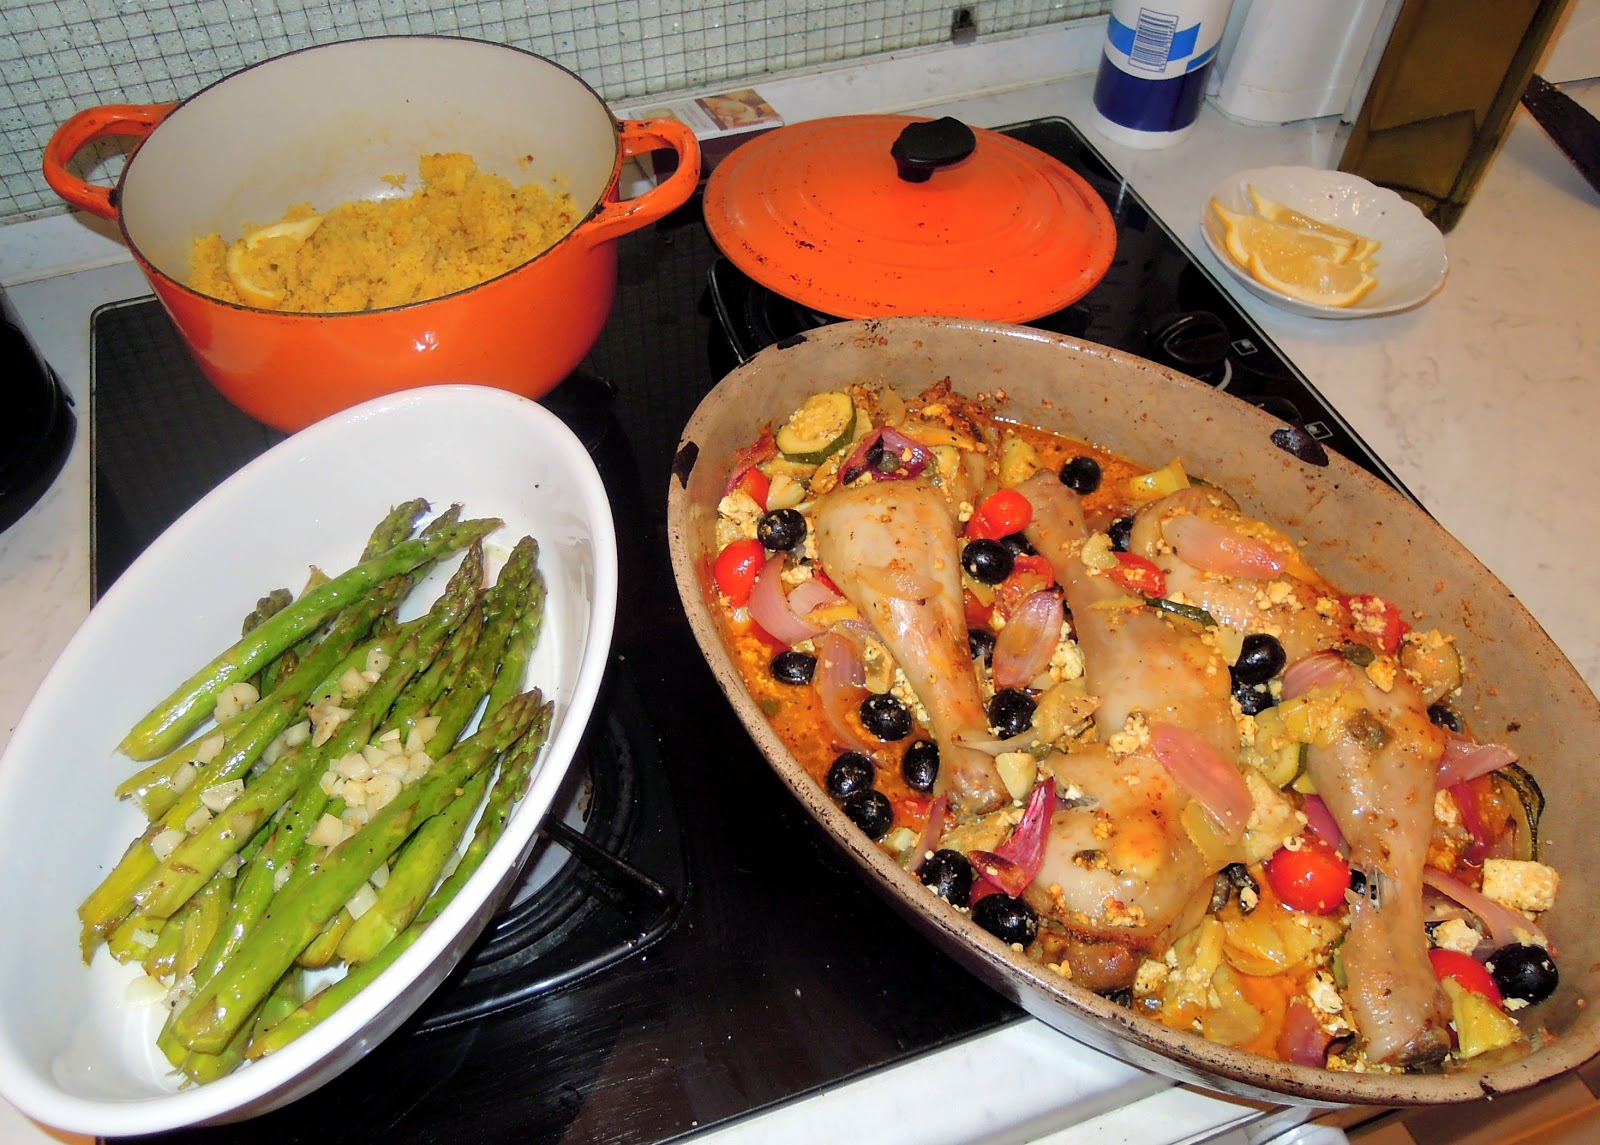 ... : Couchsurfing in Vienne with Mediterranean Baked Chicken Thighs